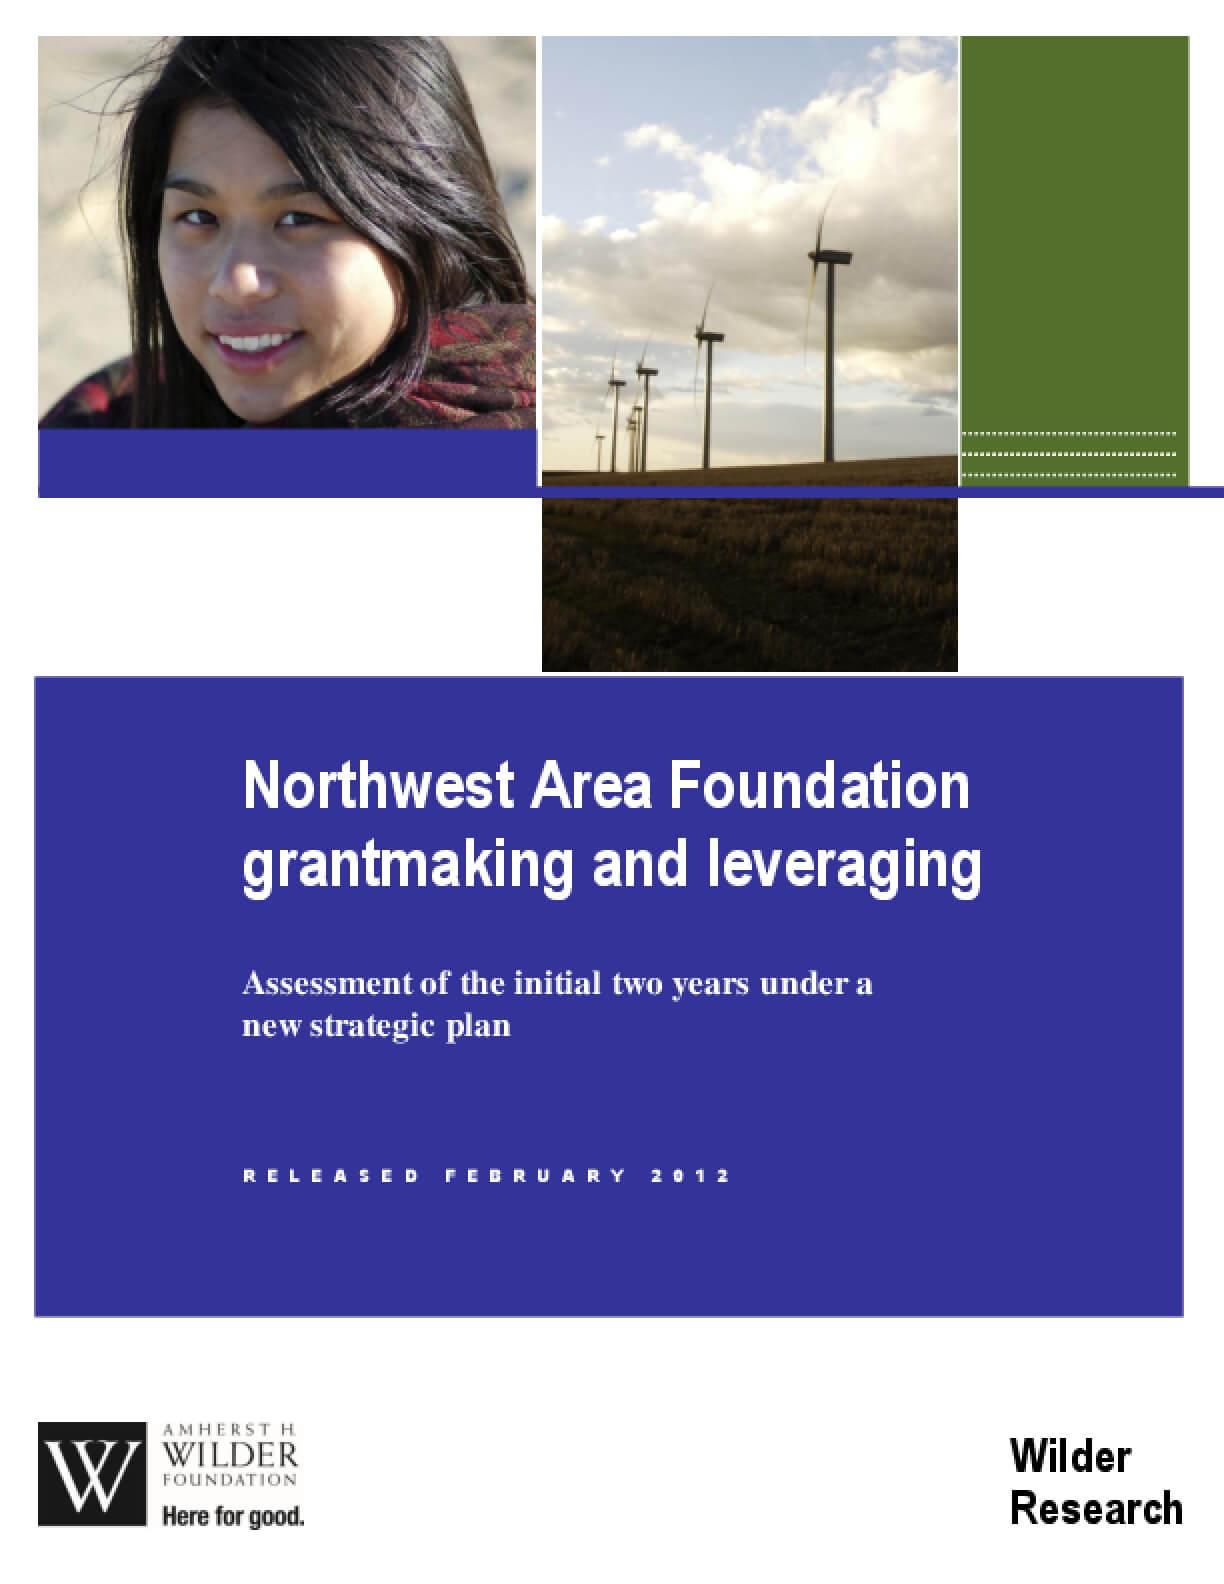 Northwest Area Foundation Grantmaking and Leveraging: Assessment of the Initial Two Years Under a New Strategic Plan